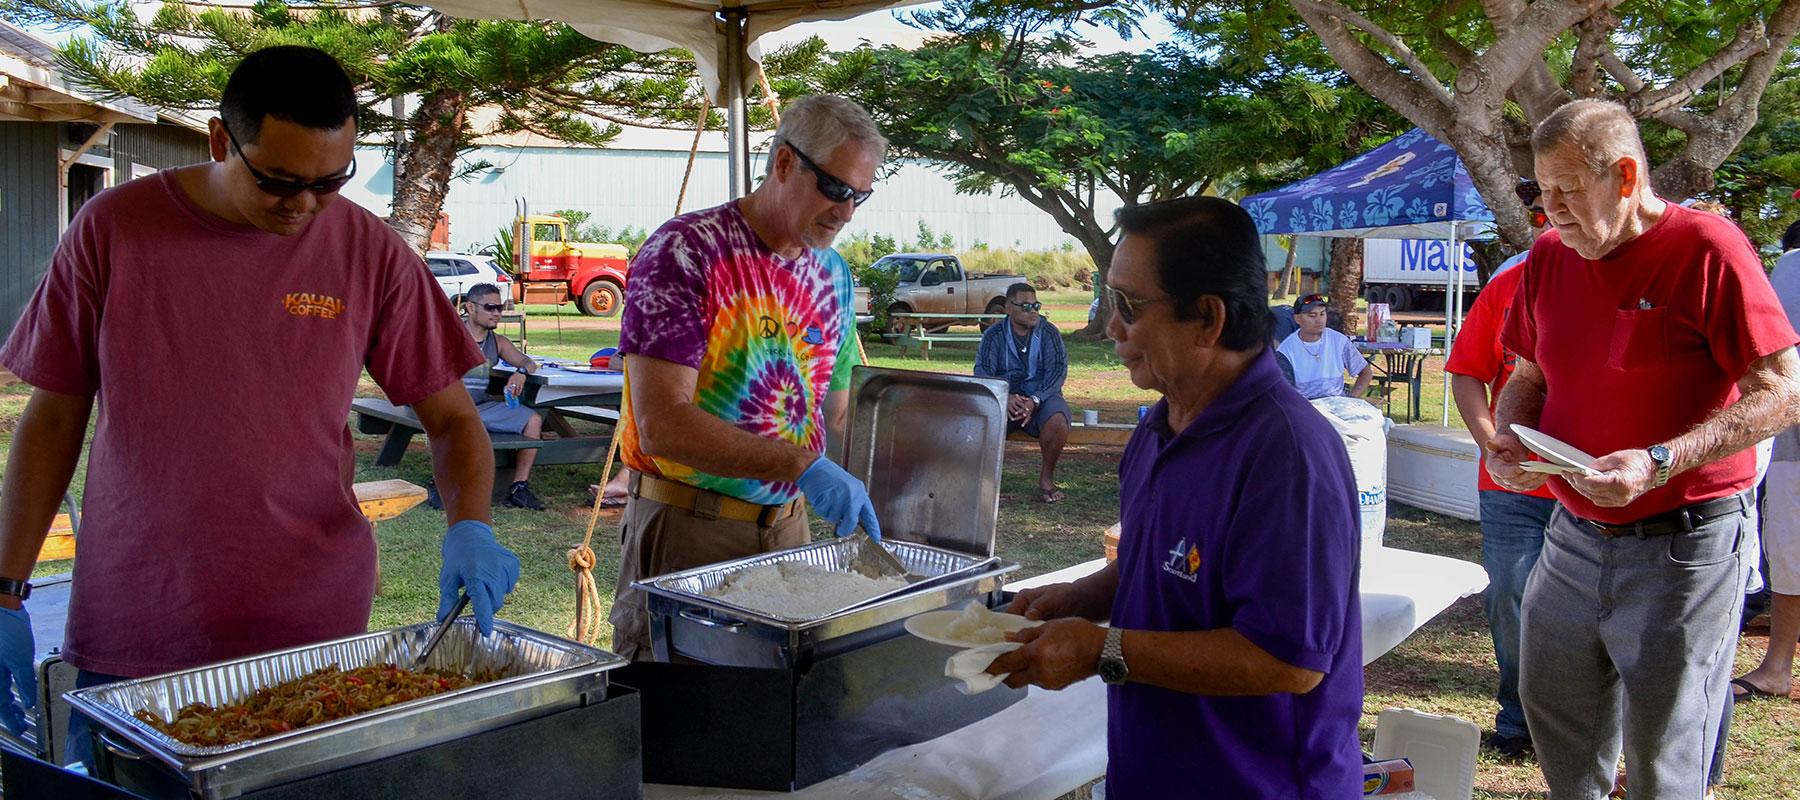 Kauai Coffee managers serve staff lunch at the Pau Harvest Celebration